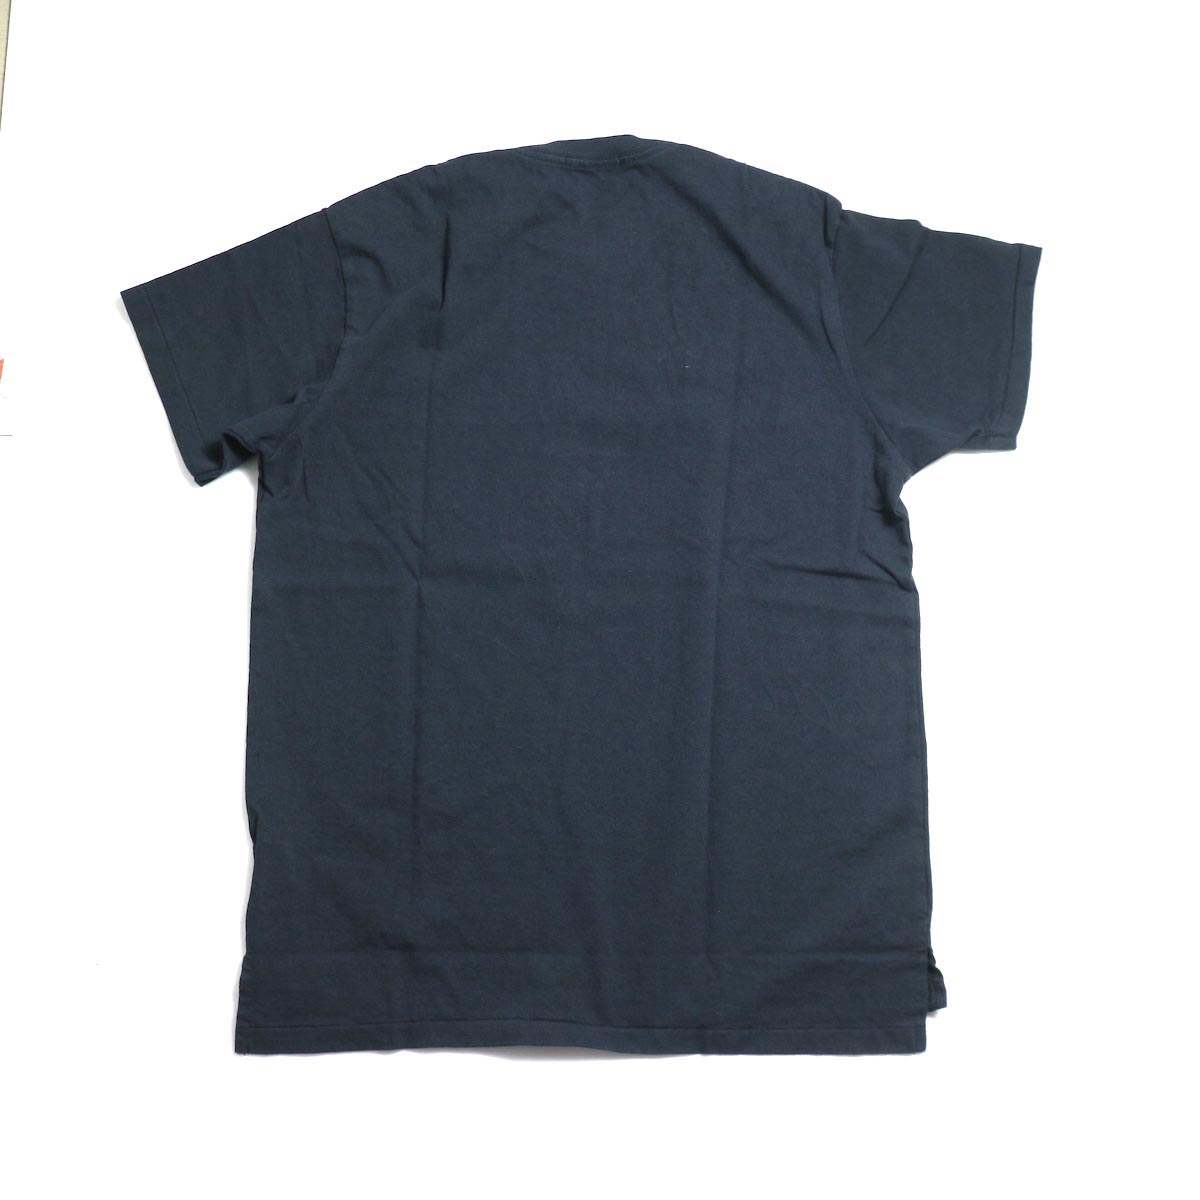 ENGINEERED GARMENTS Workaday / Crossover Neck Pocket Tee -Navy 背面